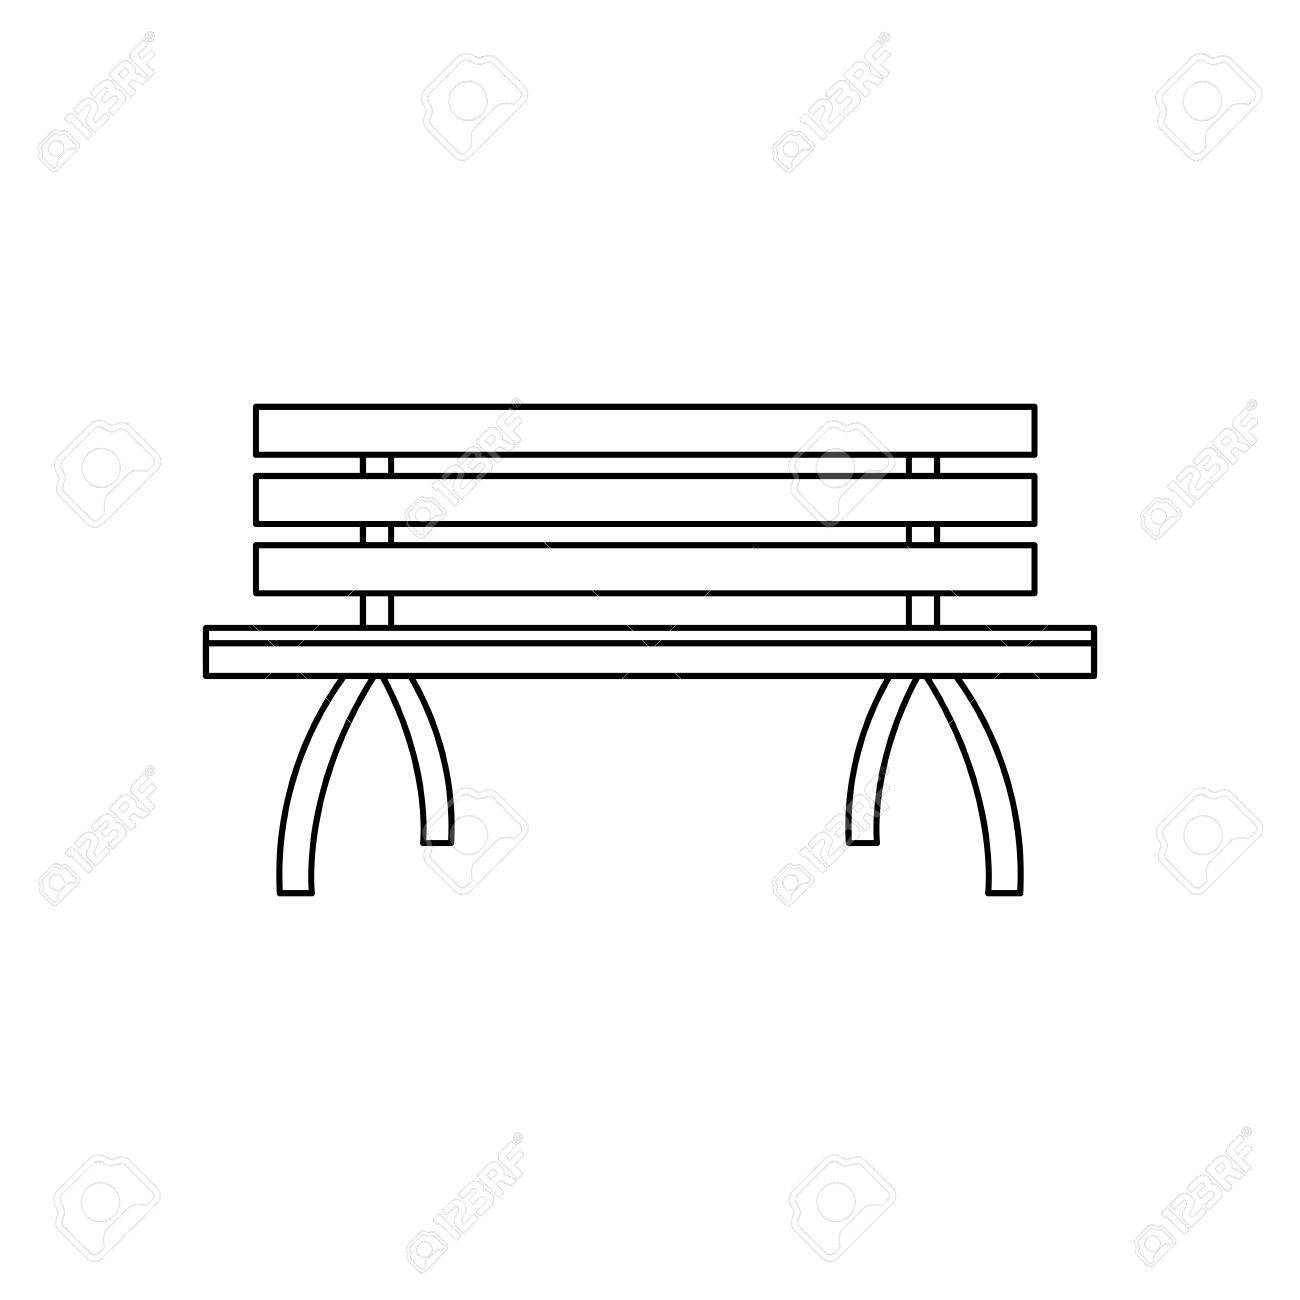 Bench clipart black and white picture stock Bench Clipart Black And White (90+ images in Collection) Page 1 picture stock